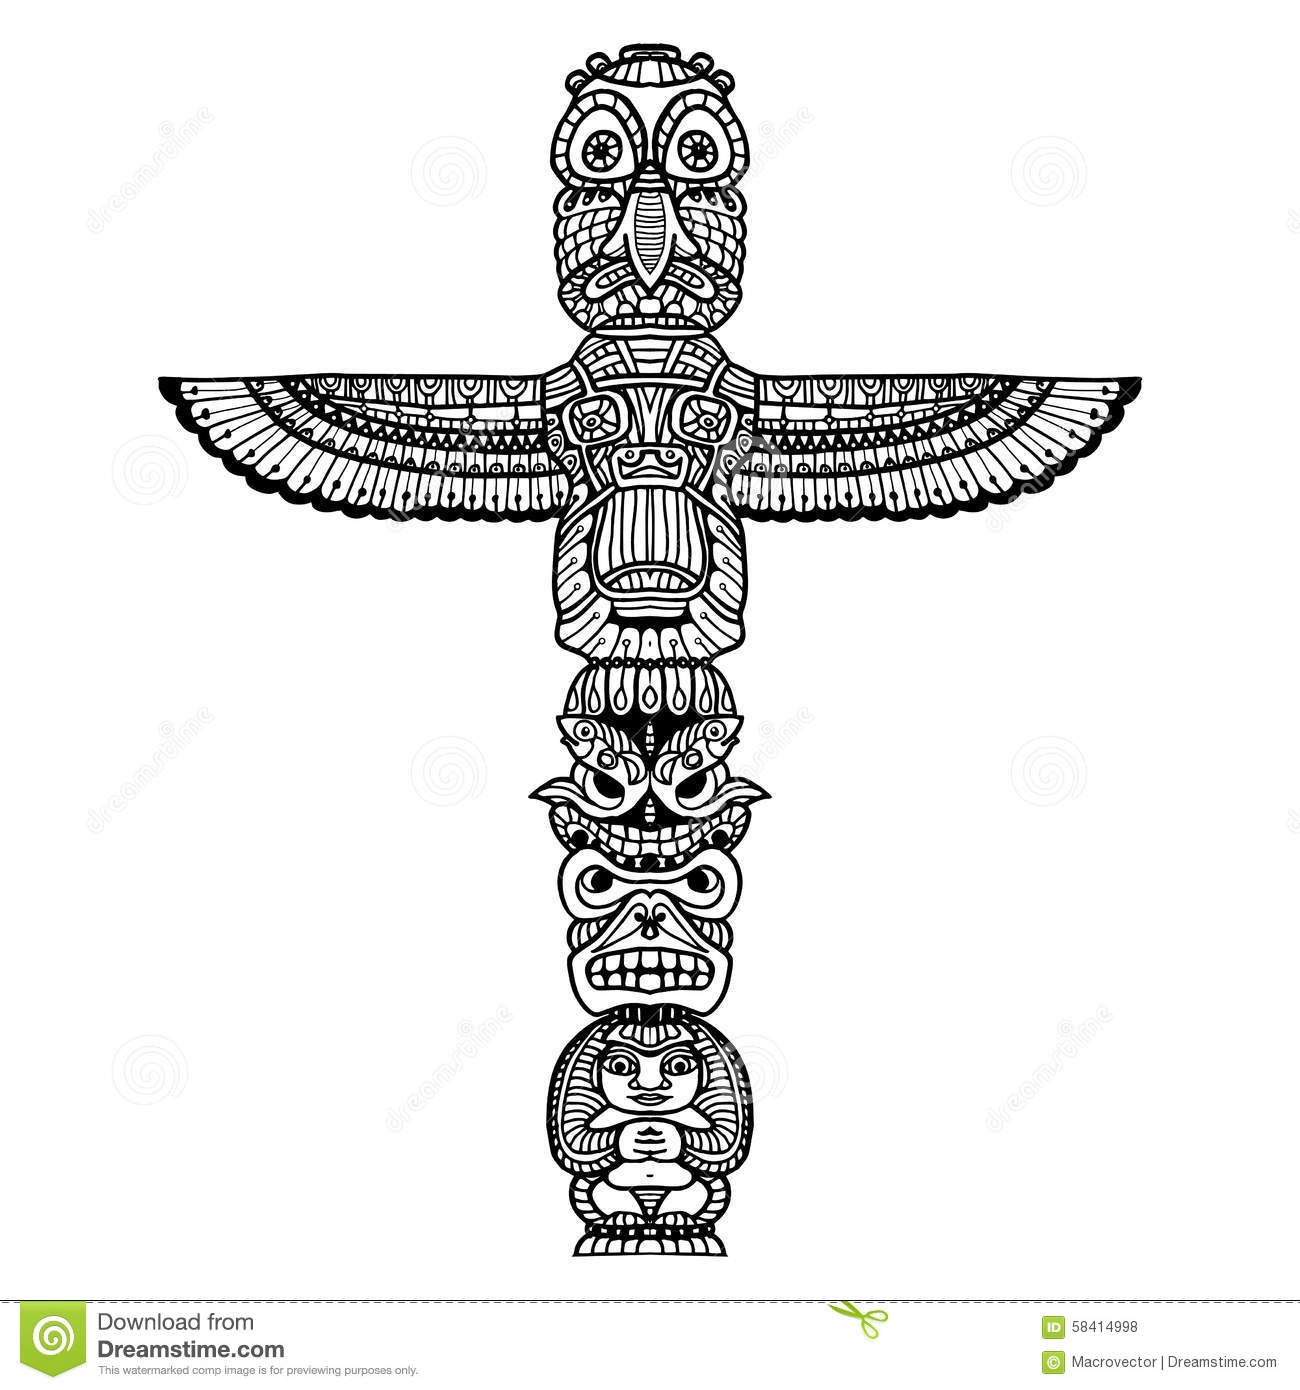 cactus coloring page - illustration stock illustration de totem de griffonnage image